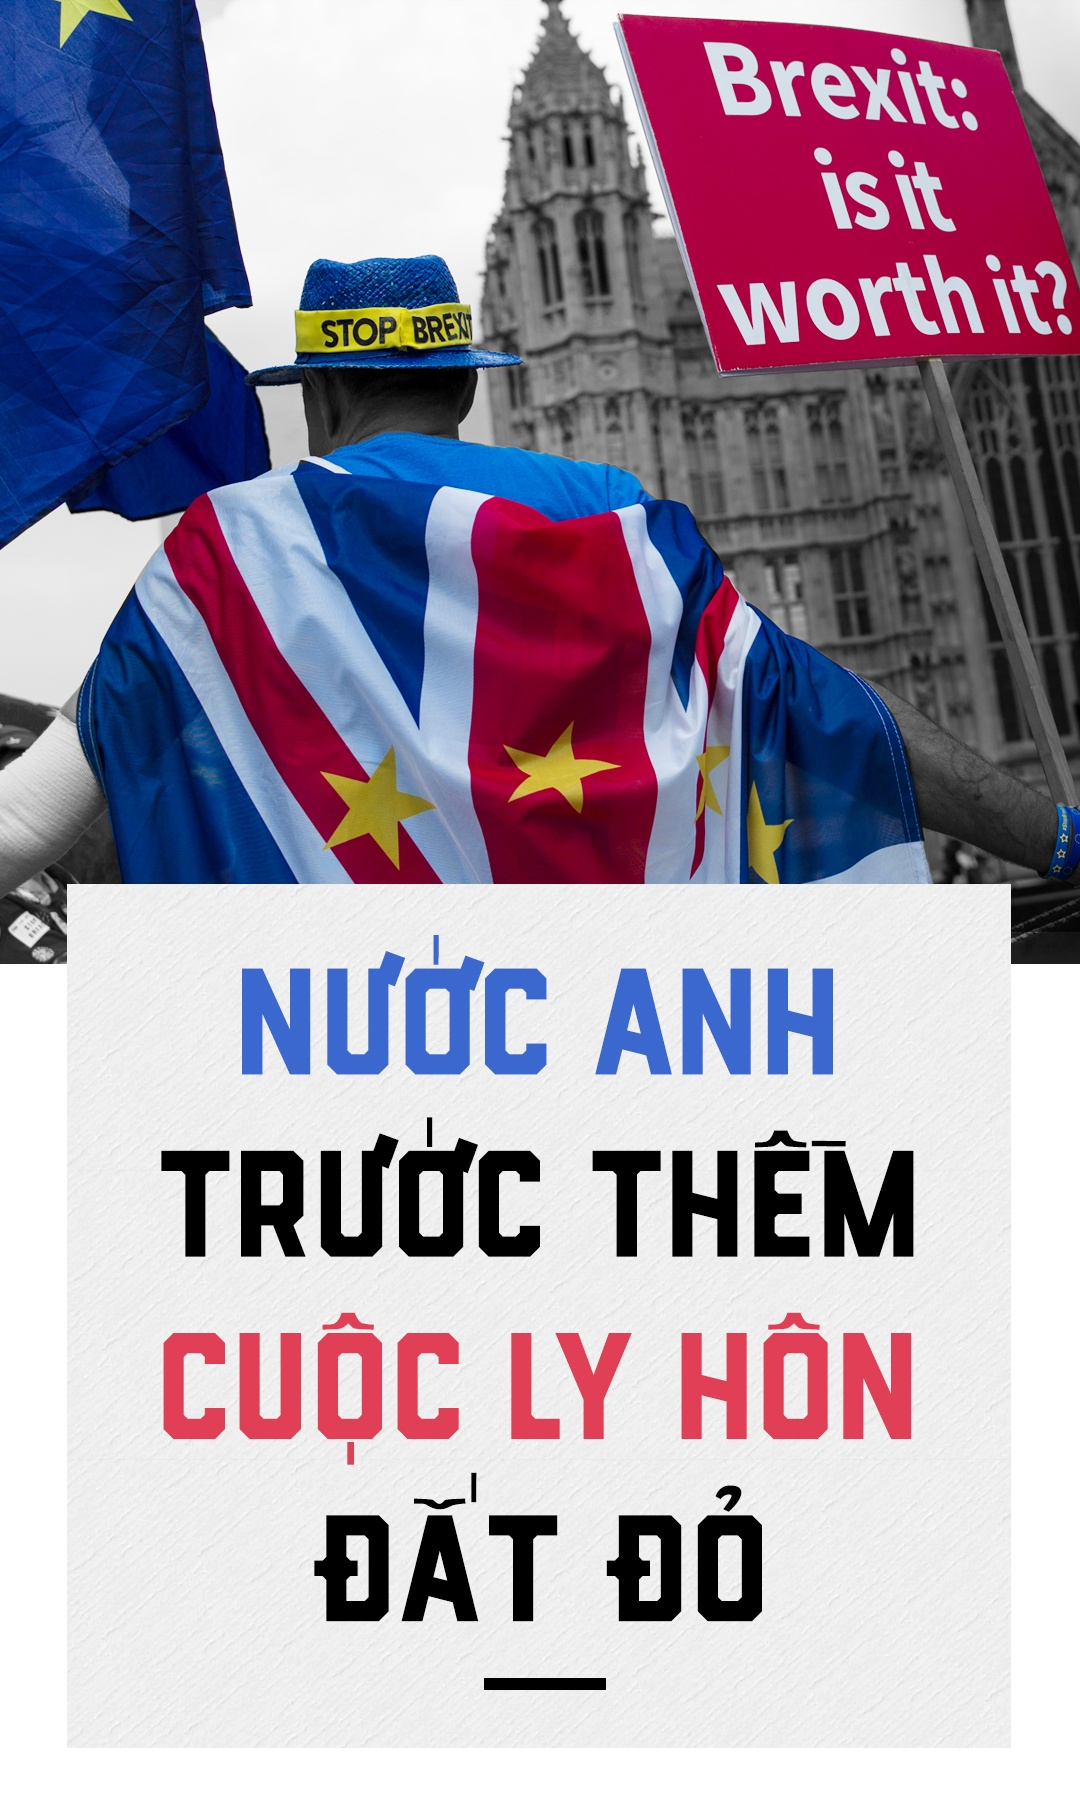 6 thang truoc Brexit, nuoc Anh so hai cuoc ly hon dat do hinh anh 1